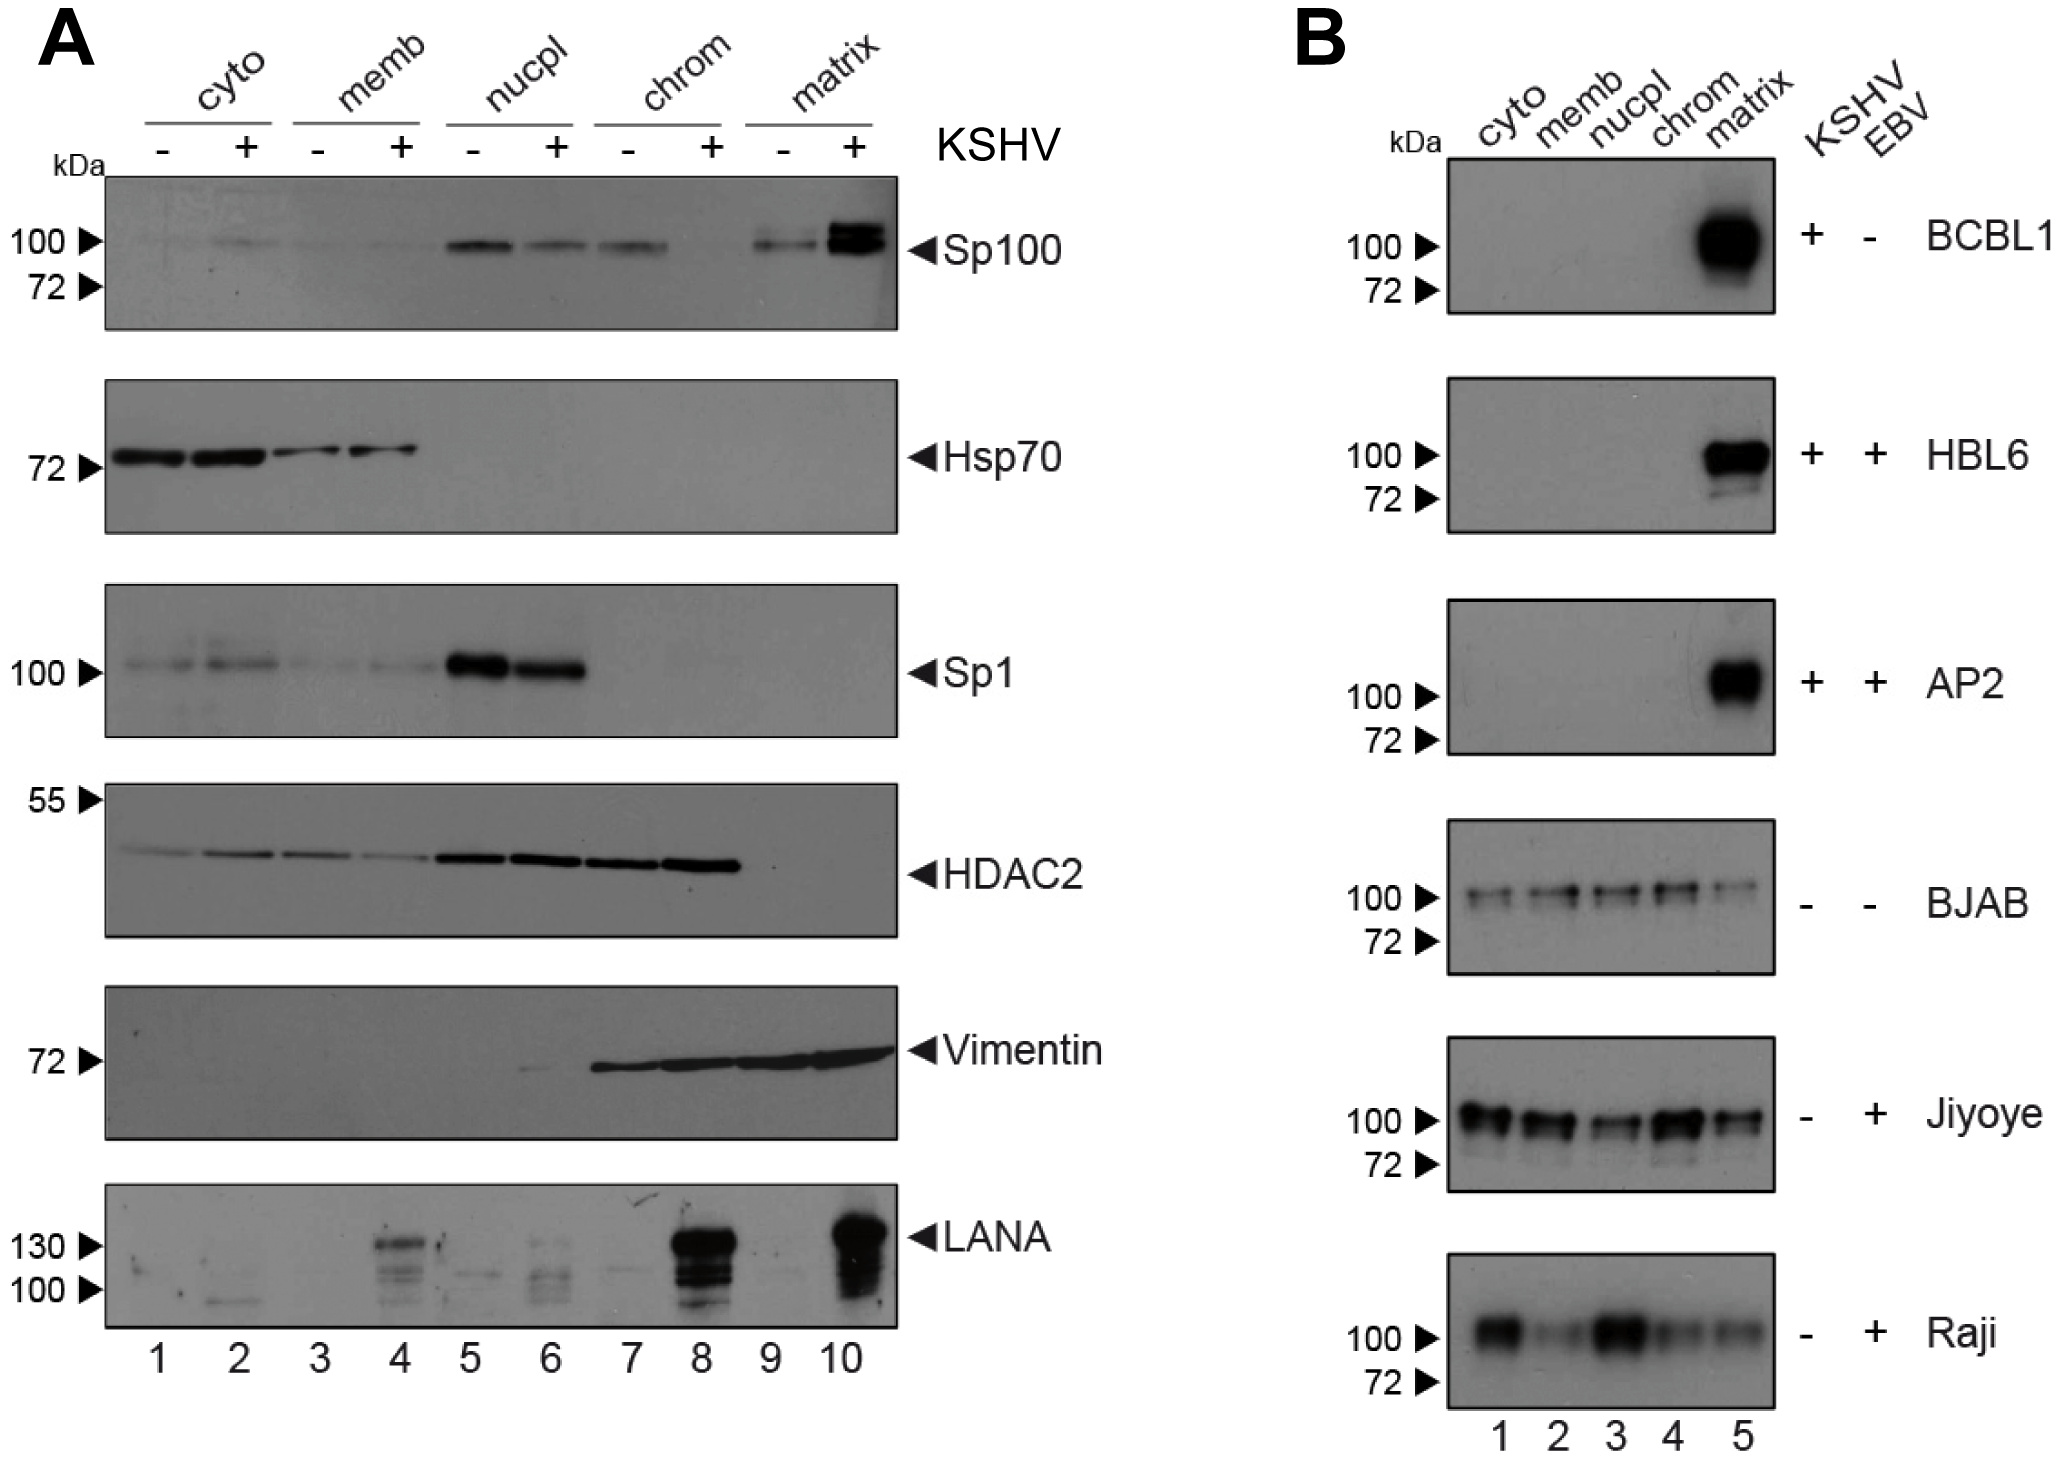 Sp100 accumulates in the insoluble matrix upon <i>de novo</i> infection and in PEL-derived B-cell lines.